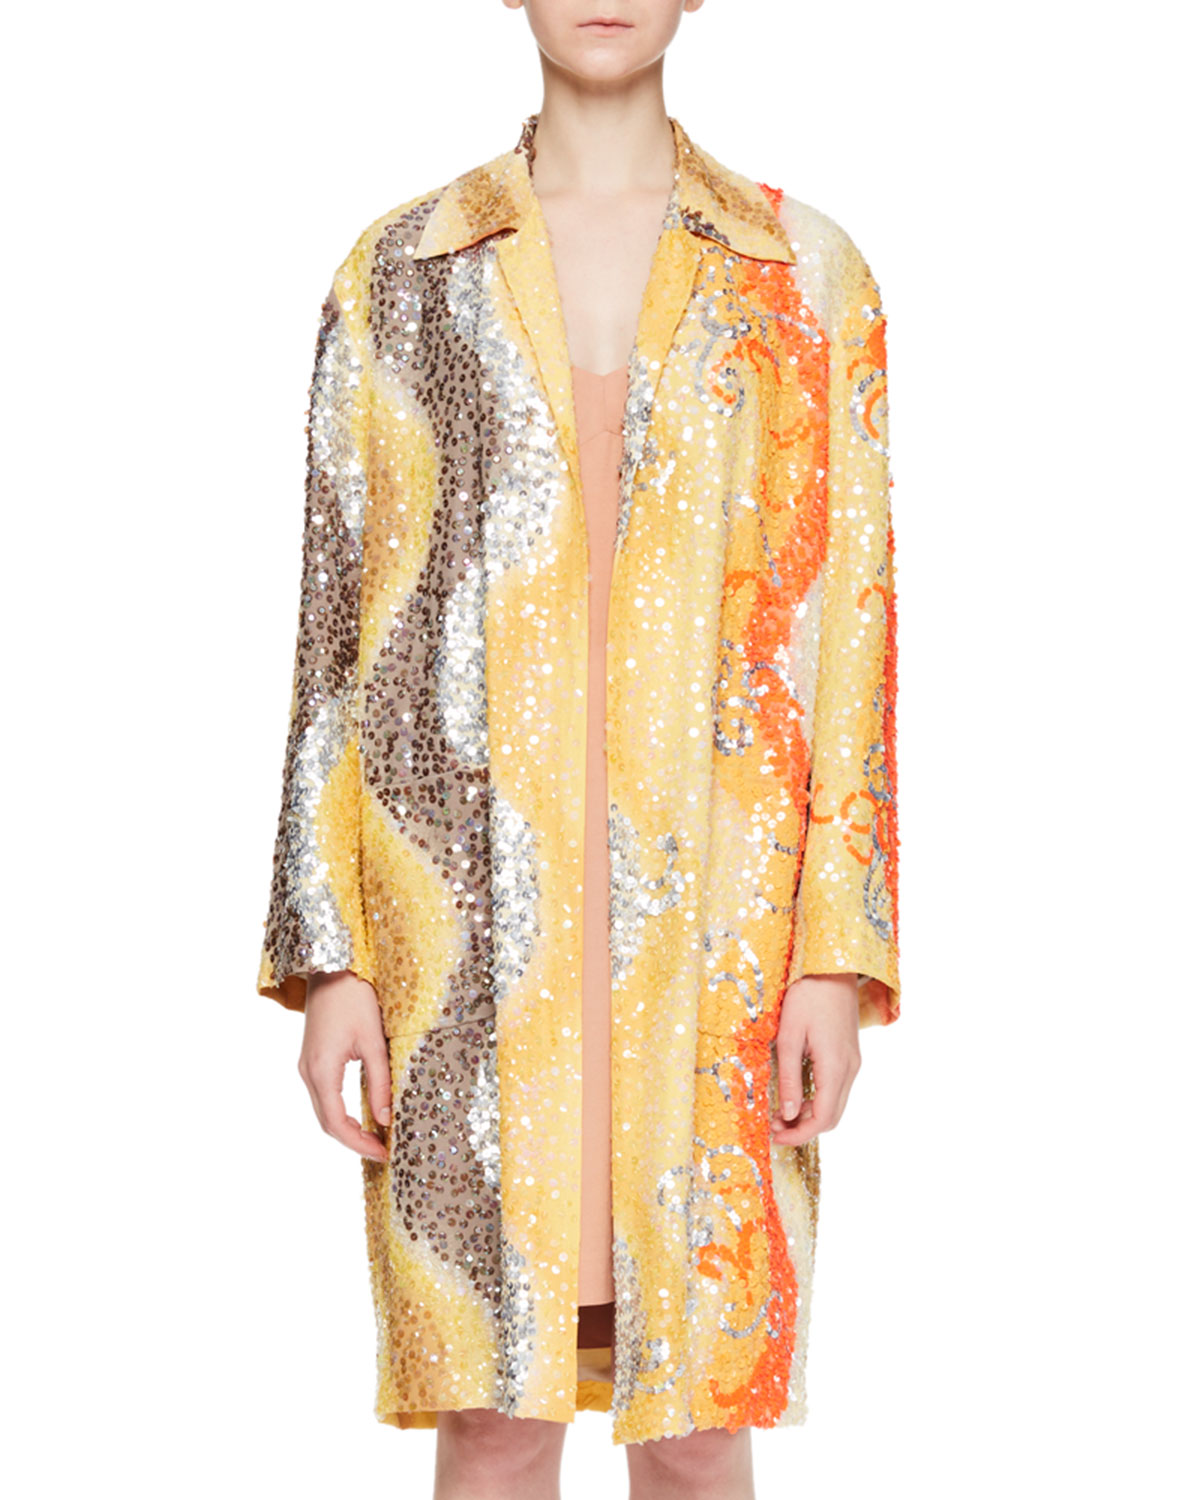 Ricard Wavy Sequin Top Coat